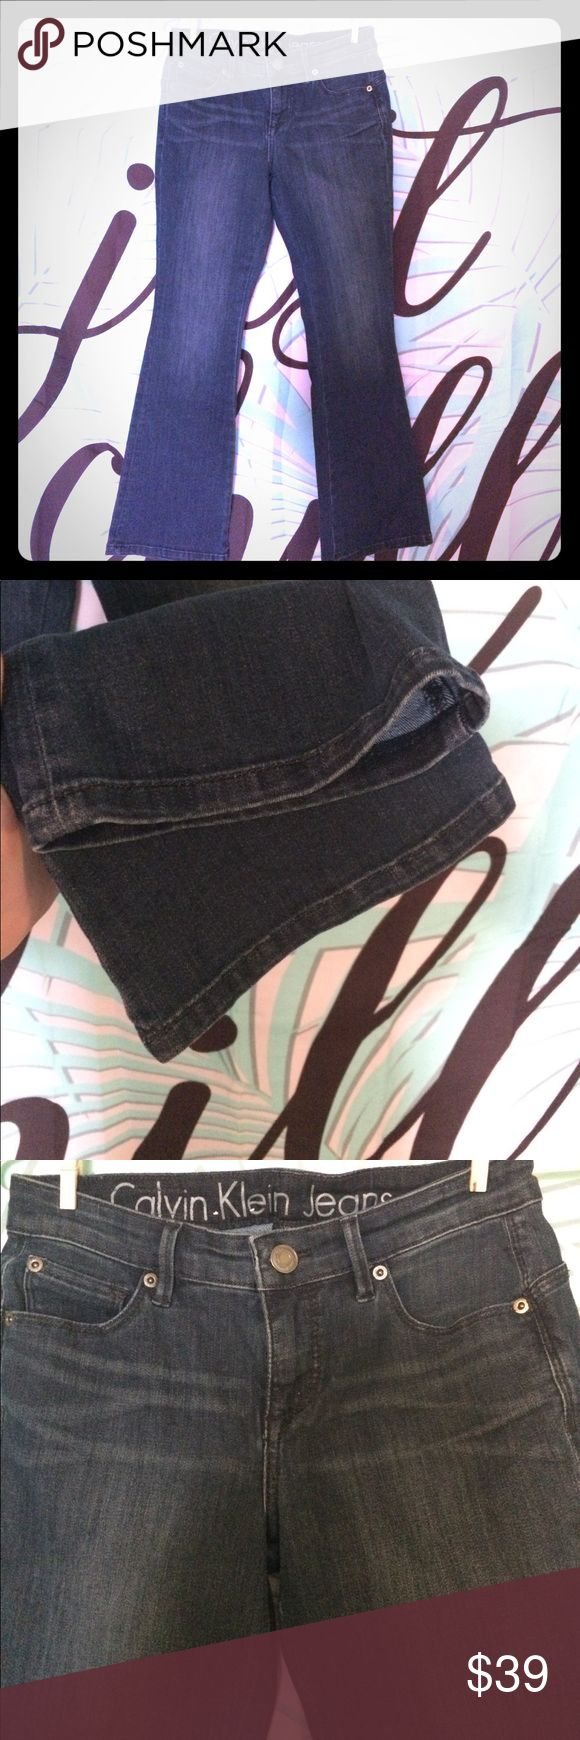 """Calvin Klein curvy boot cut jeans Excellent condition ! No noticed flaws! Basically new without tags. Some factory fading. Size 26/2p rn 36009 ca 00213. Bootleg cut, midrise waist. Dark blue. Approx 26"""" inseam 26"""" waist 9"""" rise Calvin Klein Jeans Jeans Boot Cut"""